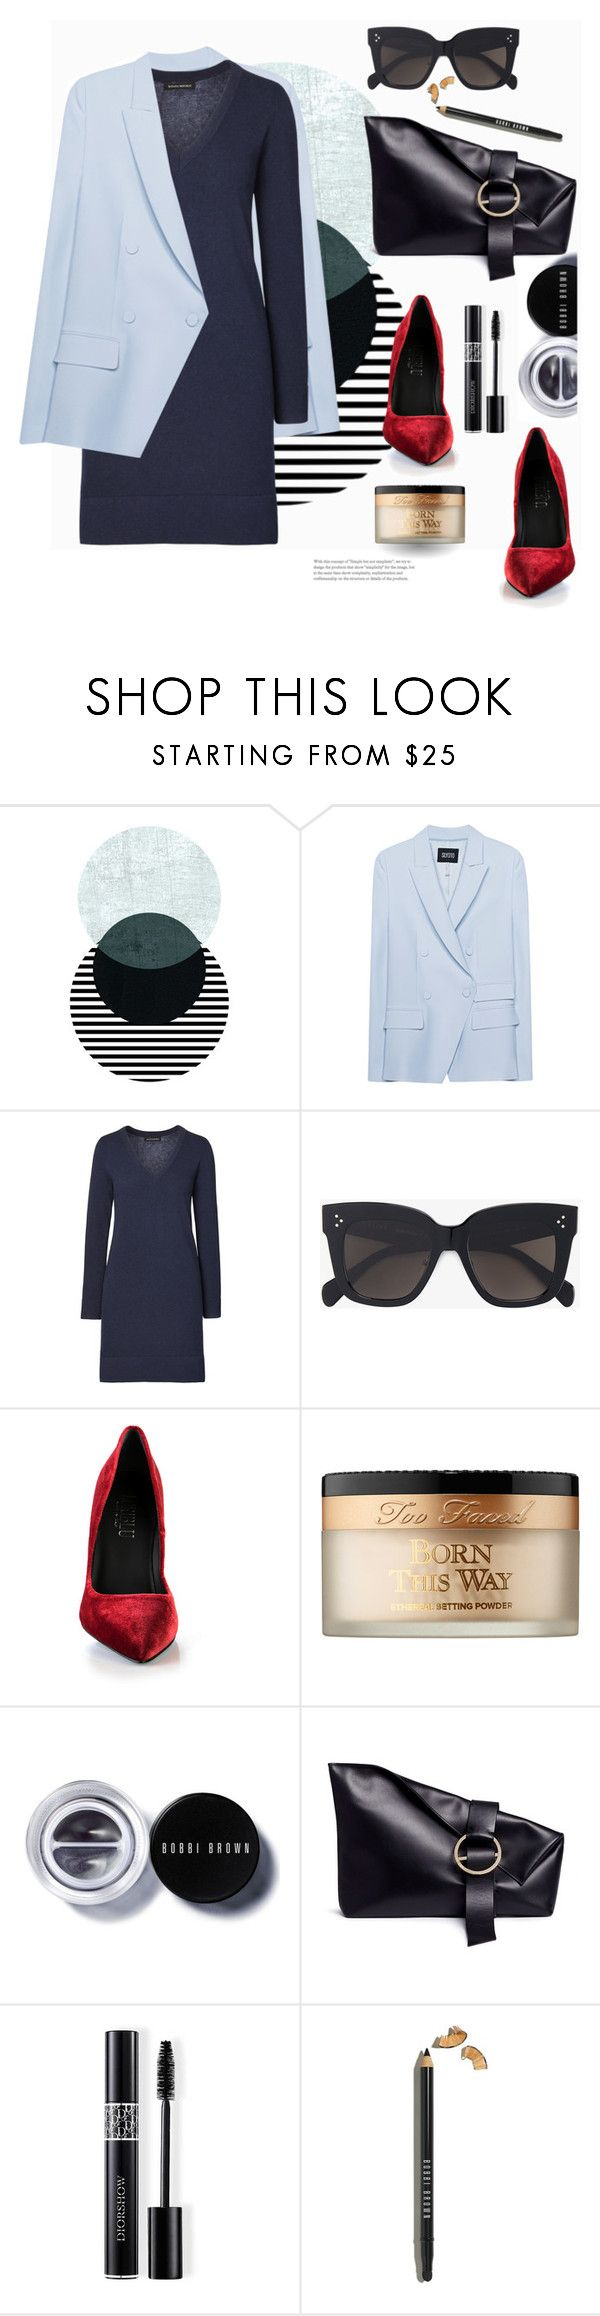 """""""don't go all matchy-matchy!"""" by gabrielleleroy ❤ liked on Polyvore featuring SLY 010, CÉLINE, Loriblu, Too Faced Cosmetics, Bobbi Brown Cosmetics, Liebeskind and Christian Dior"""